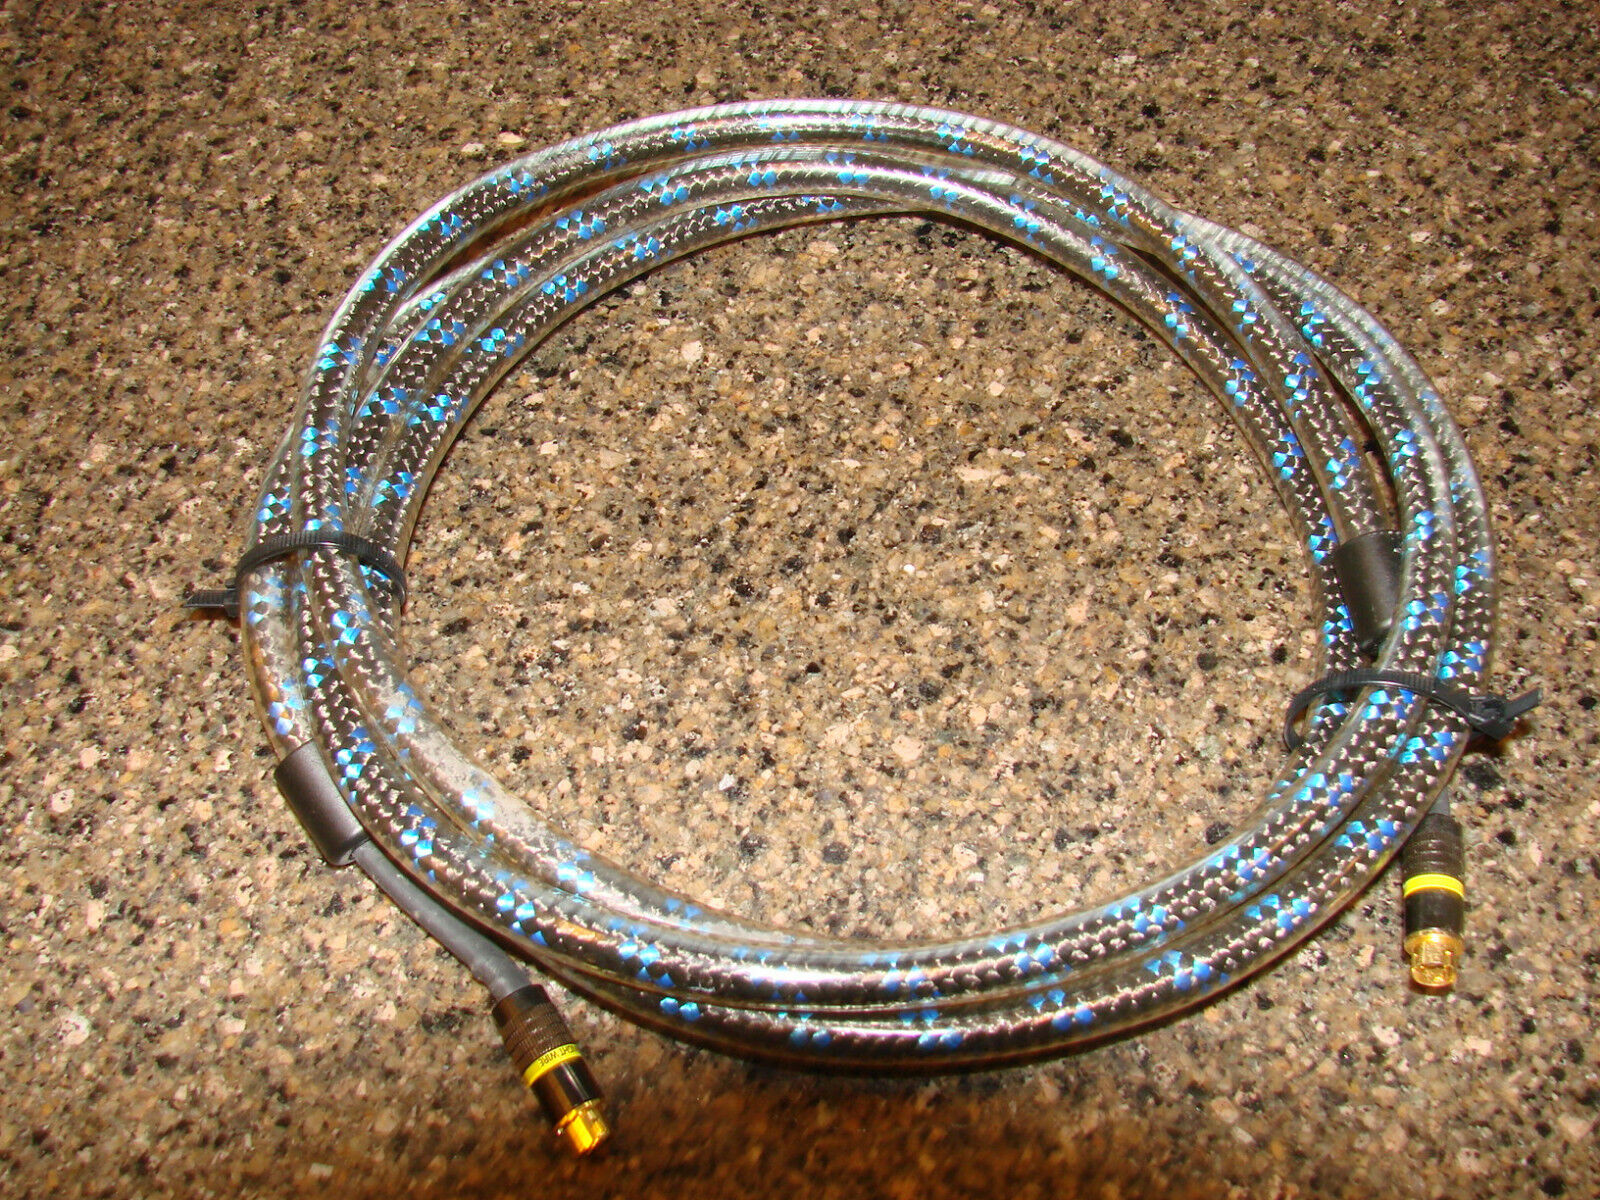 Straight Wire Mega HDS S-Video Cable, 3M Used Great Condition - $34.99